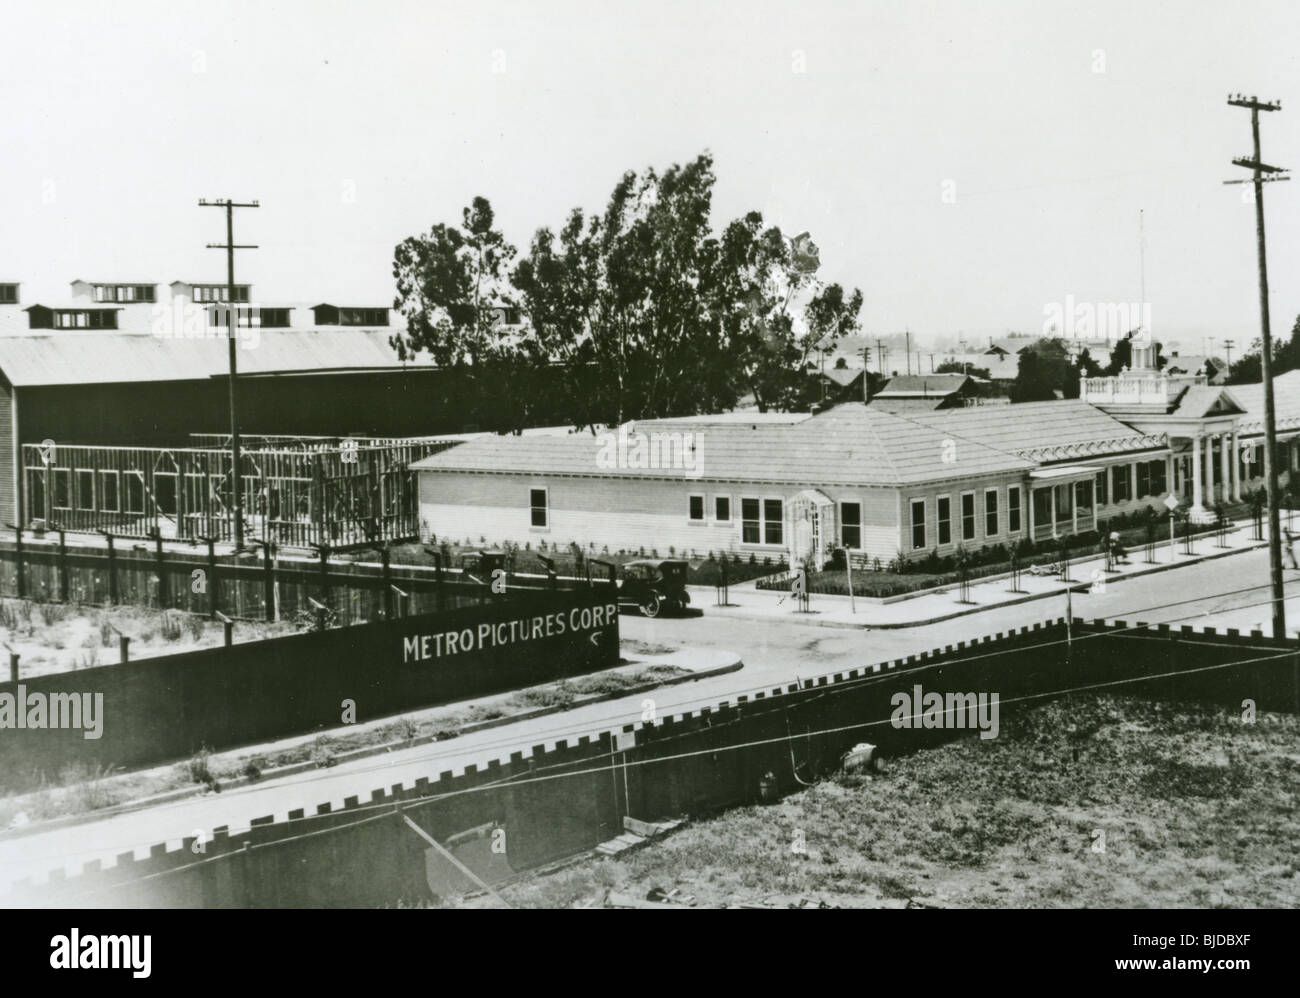 METRO STUDIOS at 6300 Romaine, Hollywood, about 1920 before Metro merged with Goldwyn and Mayer - Stock Image